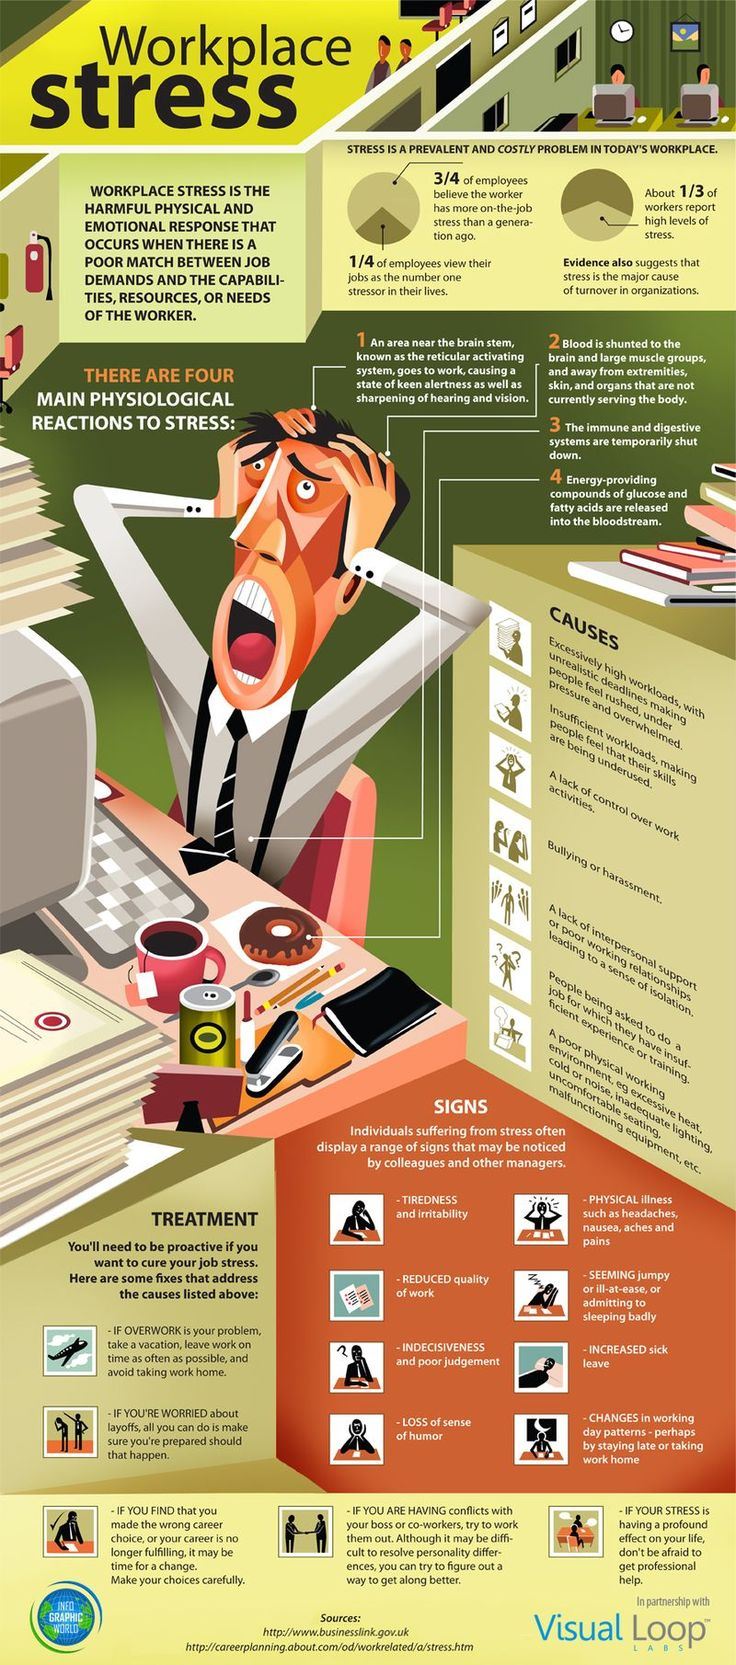 How Do You Deal with Workplace Stress?